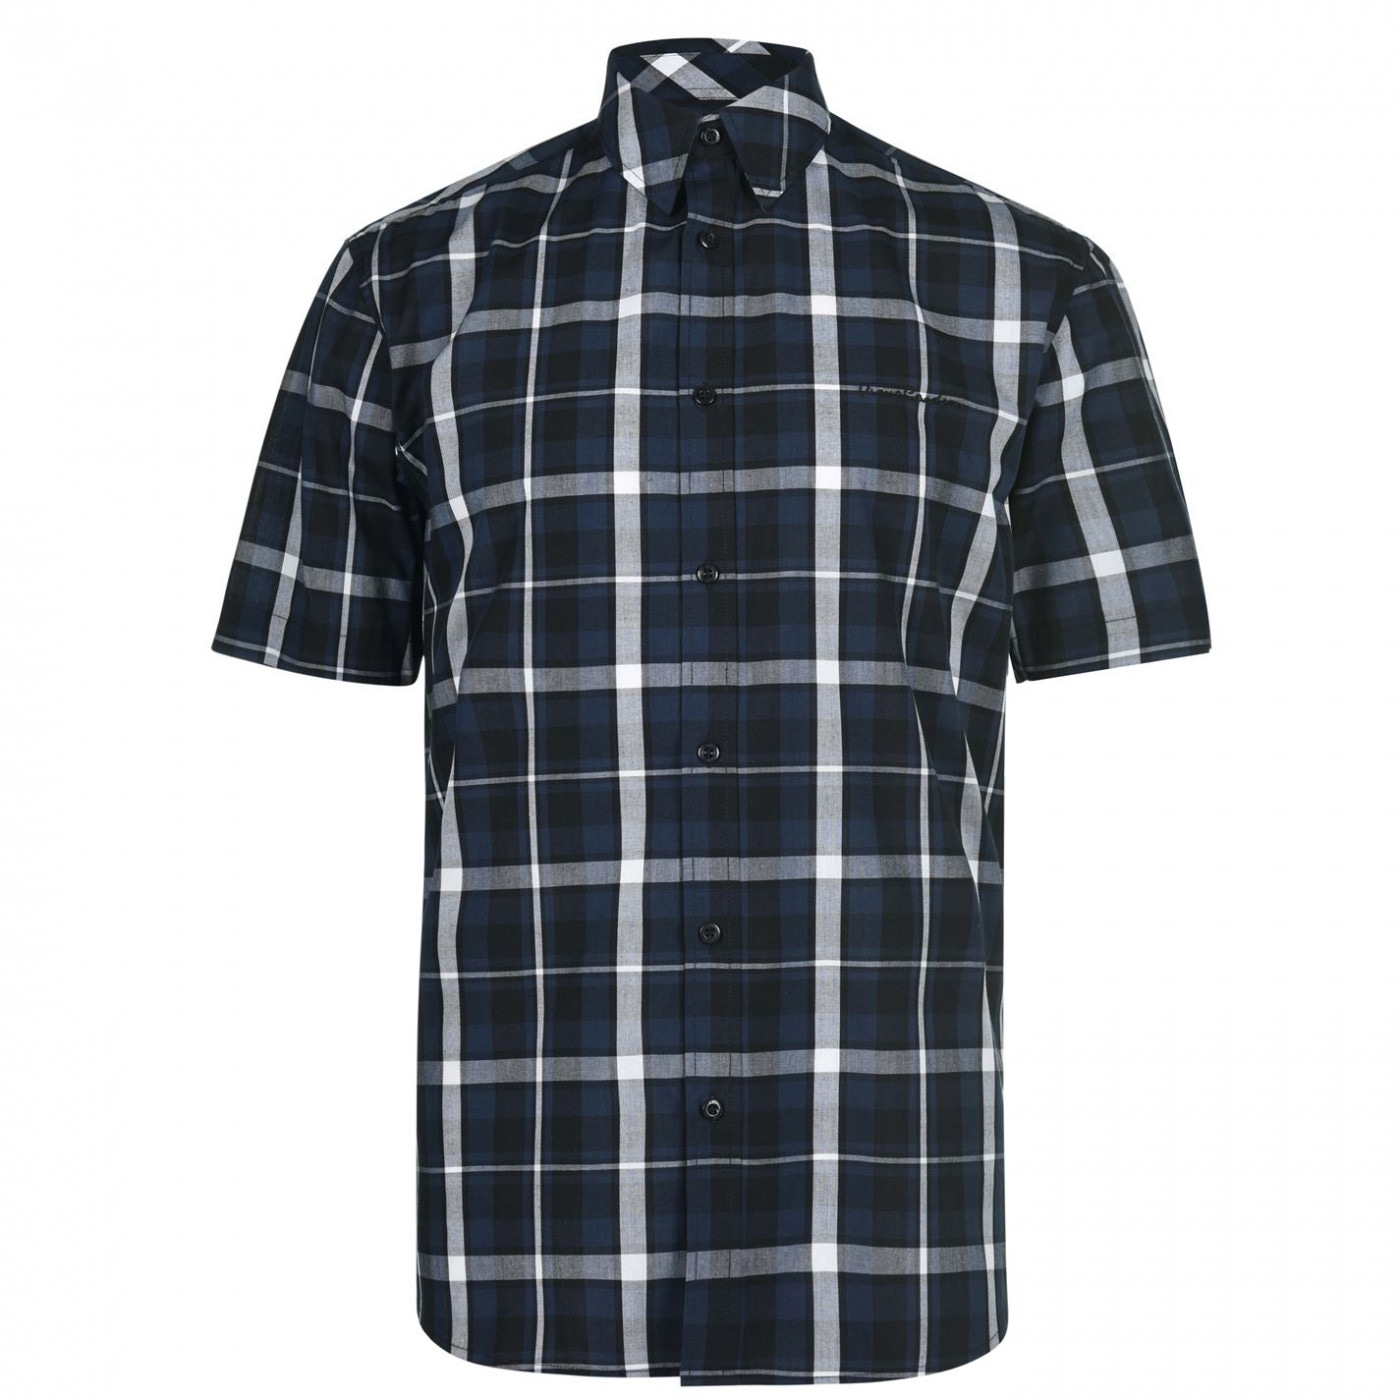 Pierre Cardin Check Print Short Sleeve Shirt Mens